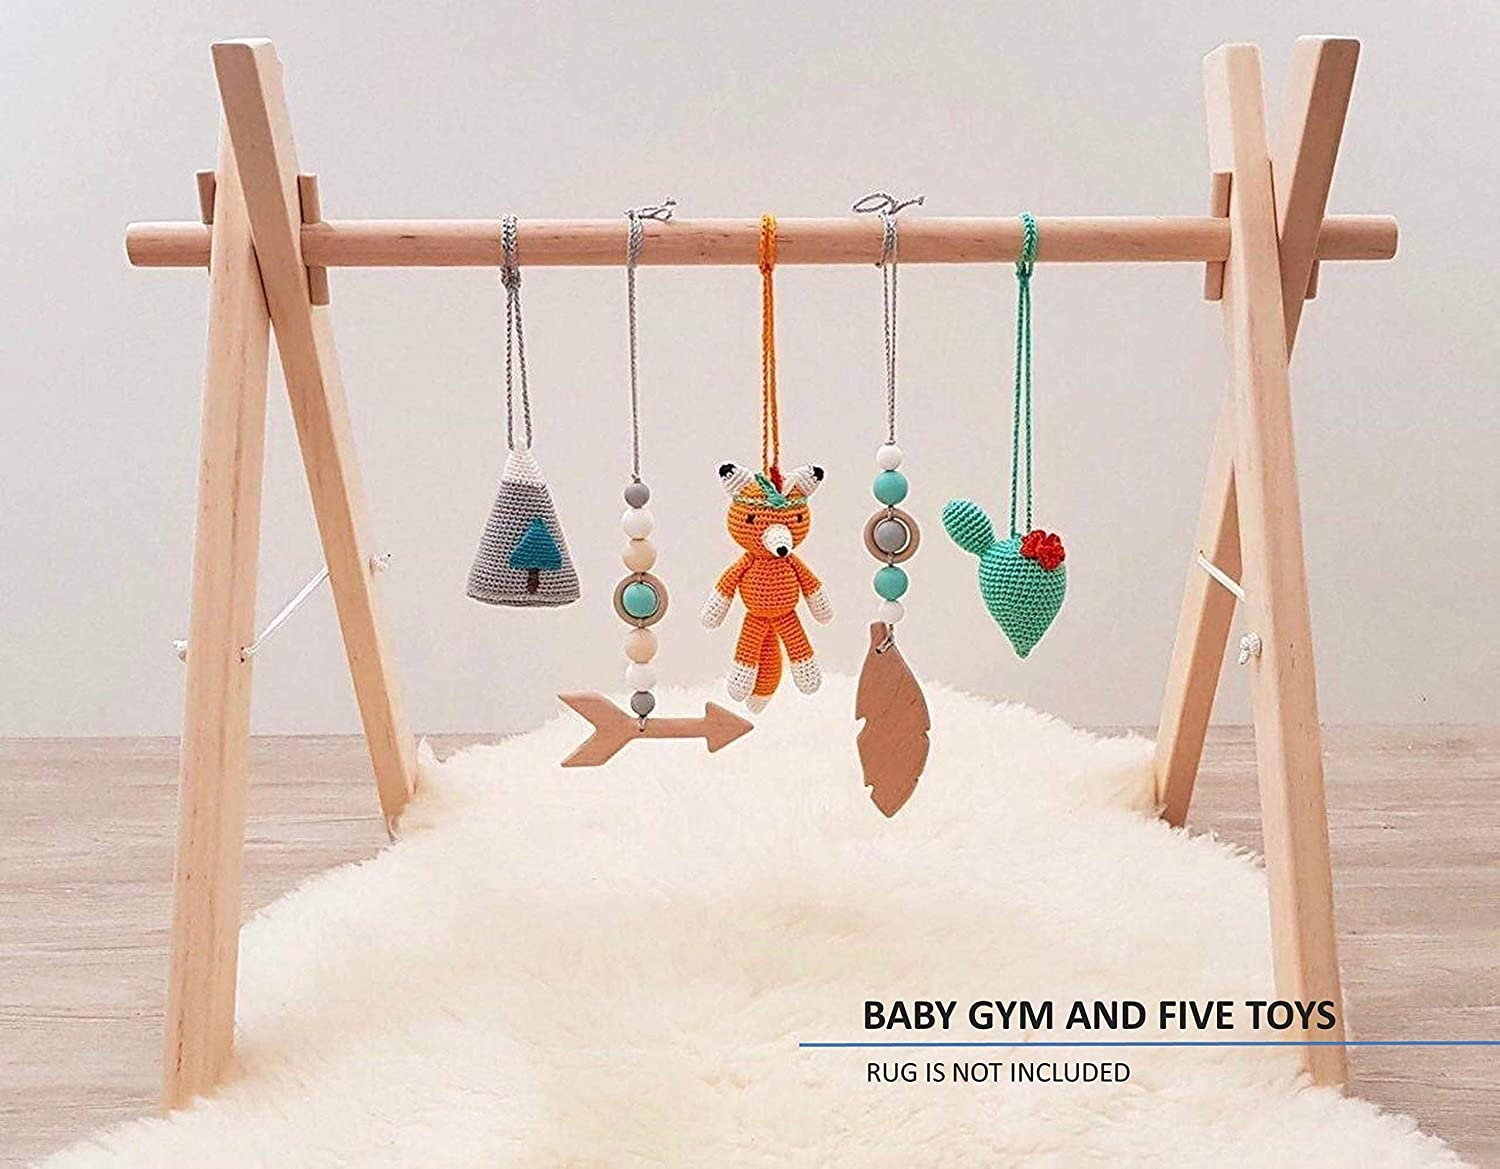 Tribal Baby gym with 5 mobiles: Fox, Cacti, Mountain, Feather, Arrow. Wood play gym, crochet and wooden baby gym mobiles. Infant activity center. Native american. Boho